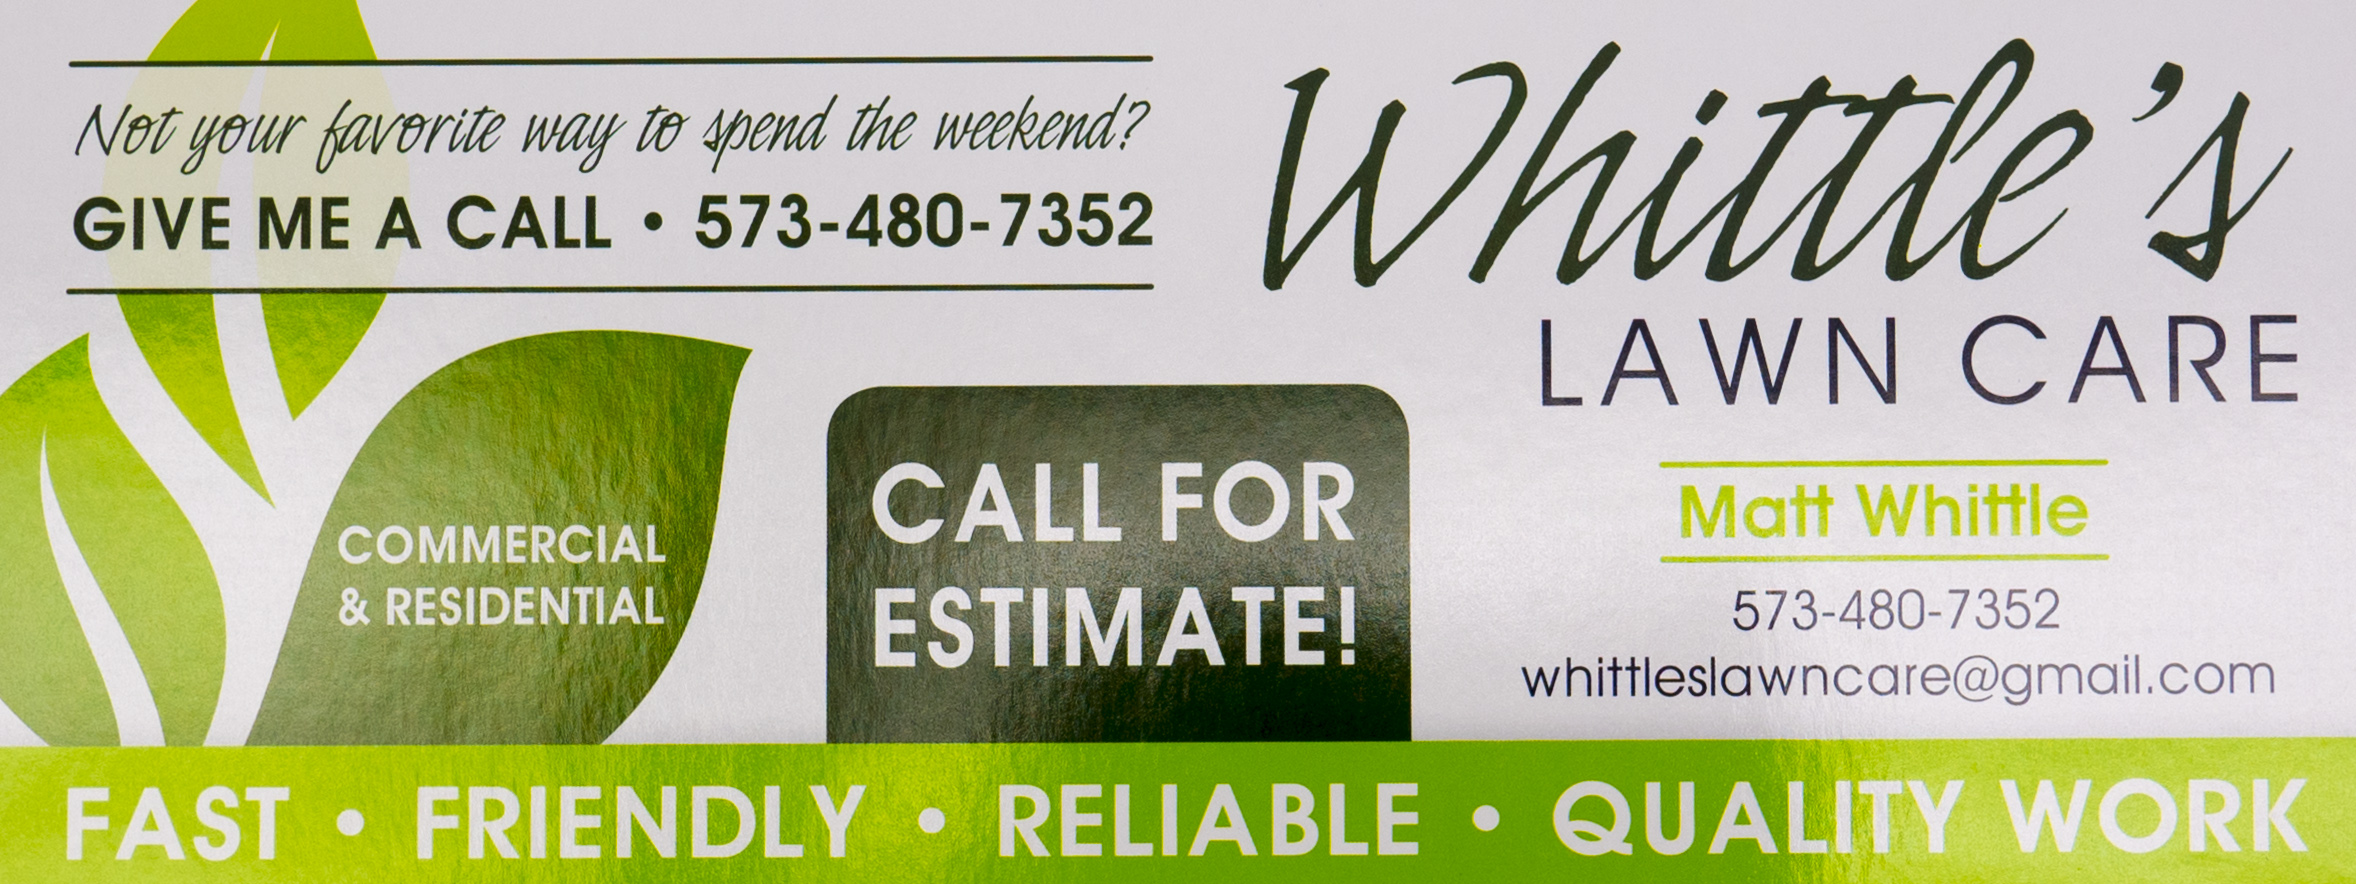 P1270773-lawncare